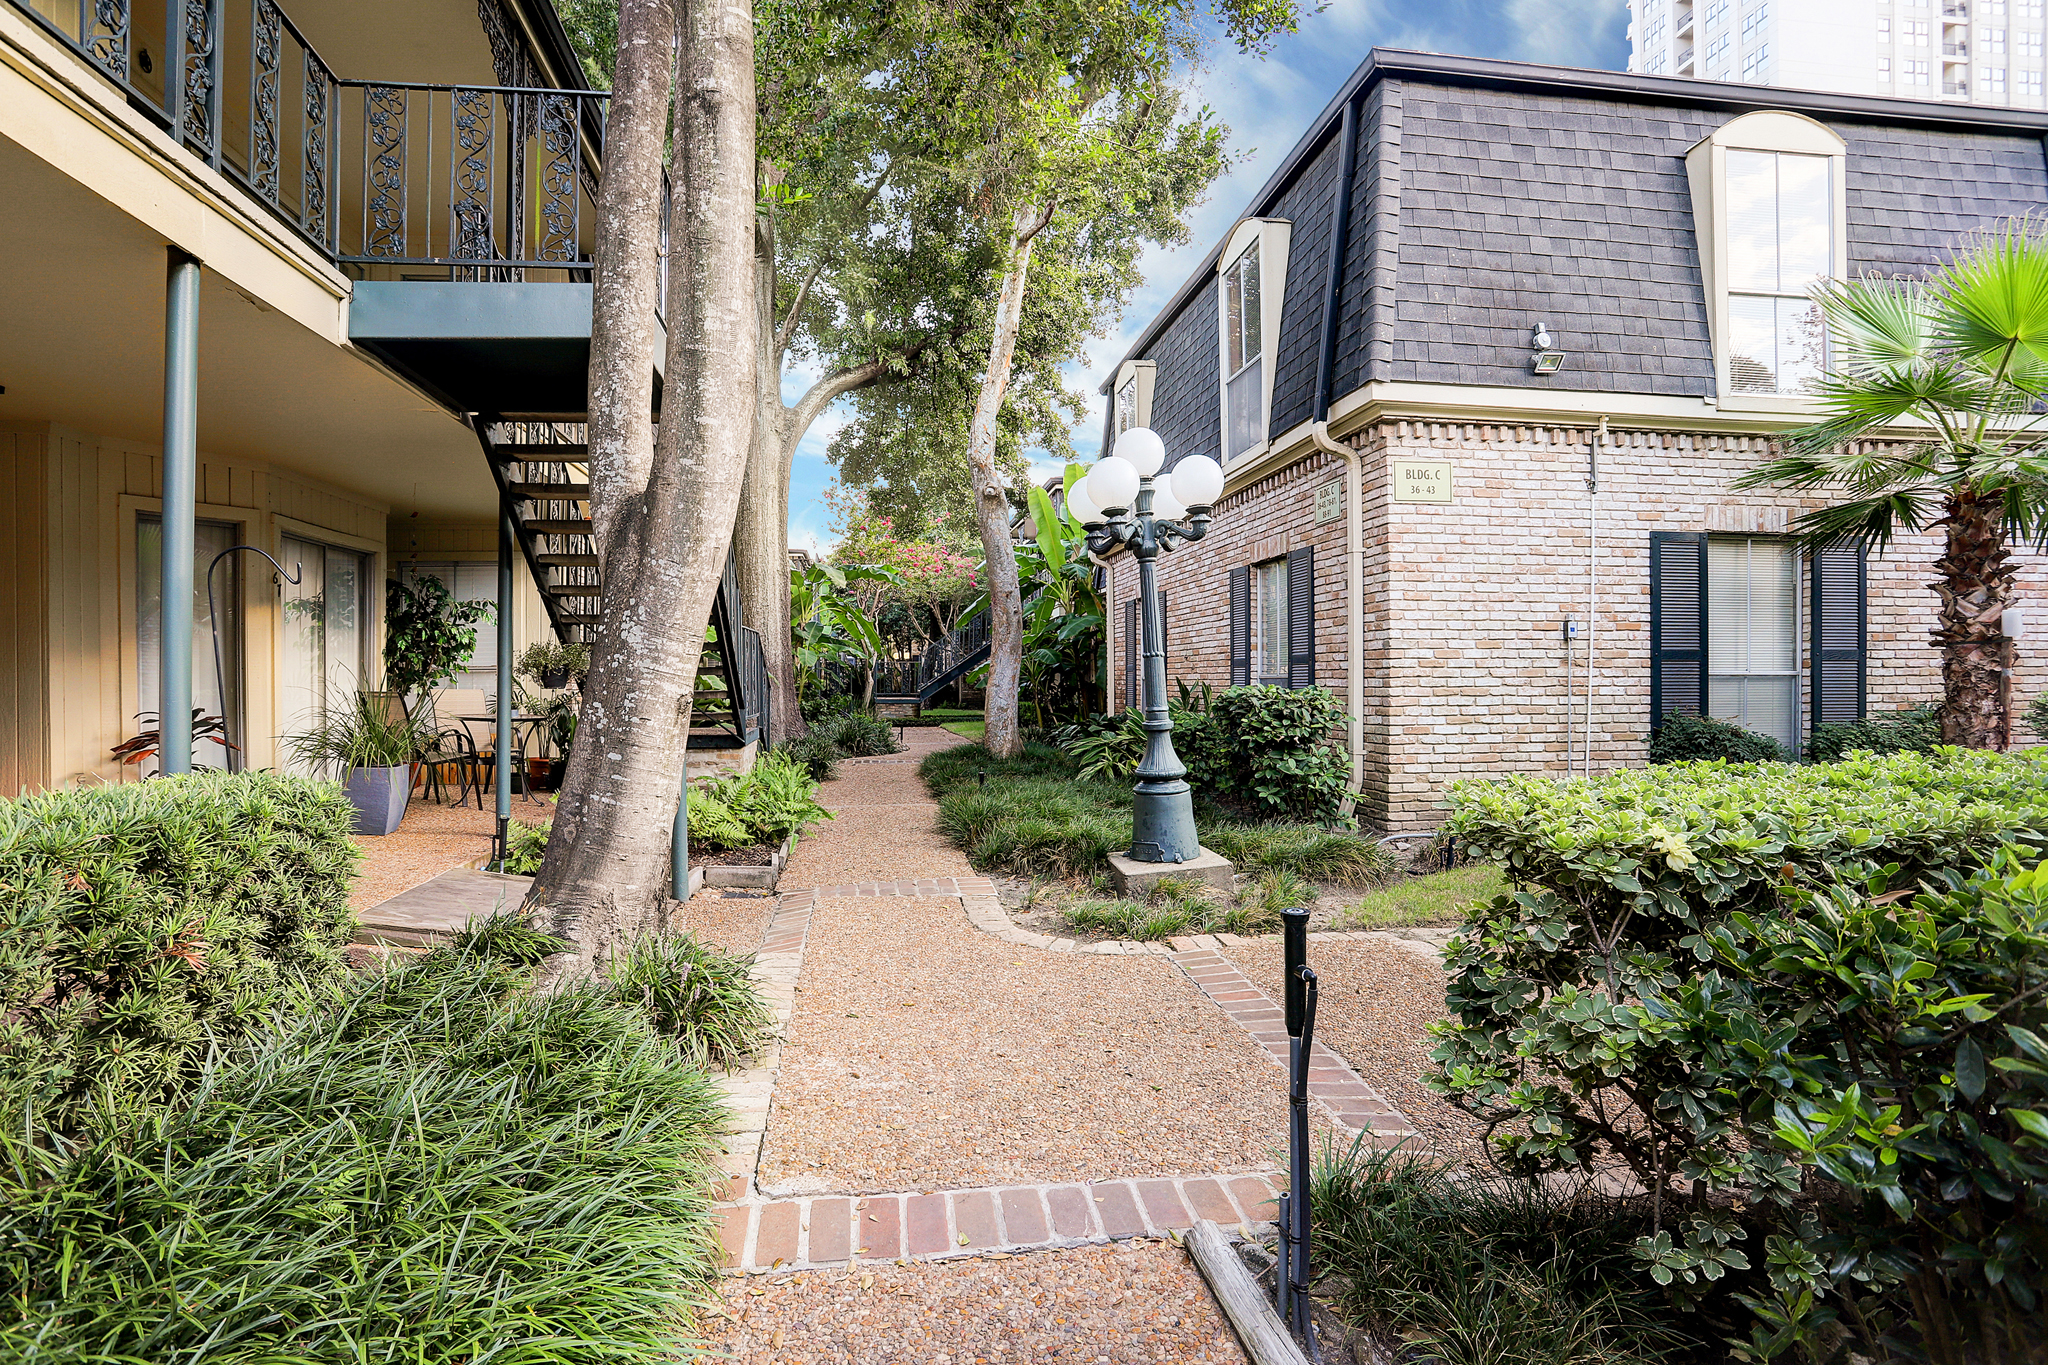 2 bedroom 1 bath condo in Uptown Park. Almost all utilities included. Has washer and dryer in unit. Designated carport. Community pool.